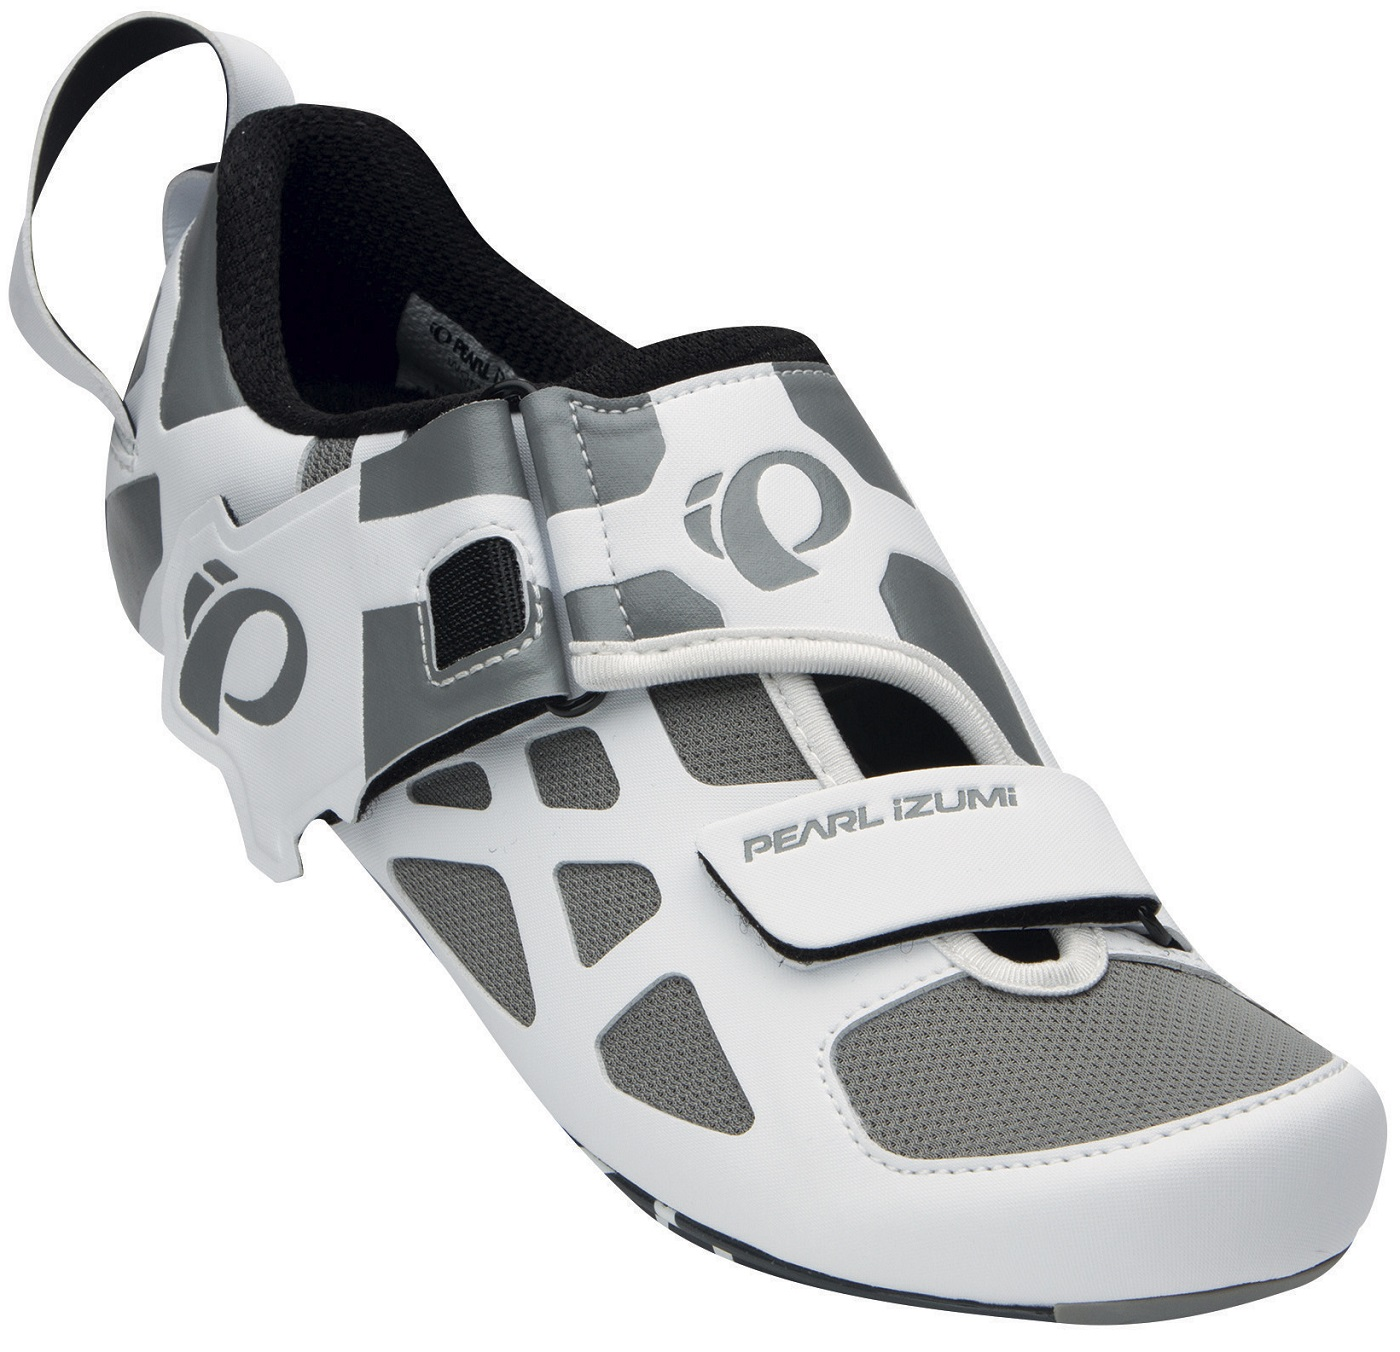 Pearl Izumi Women S Tri Fly V Cycling Shoe Review